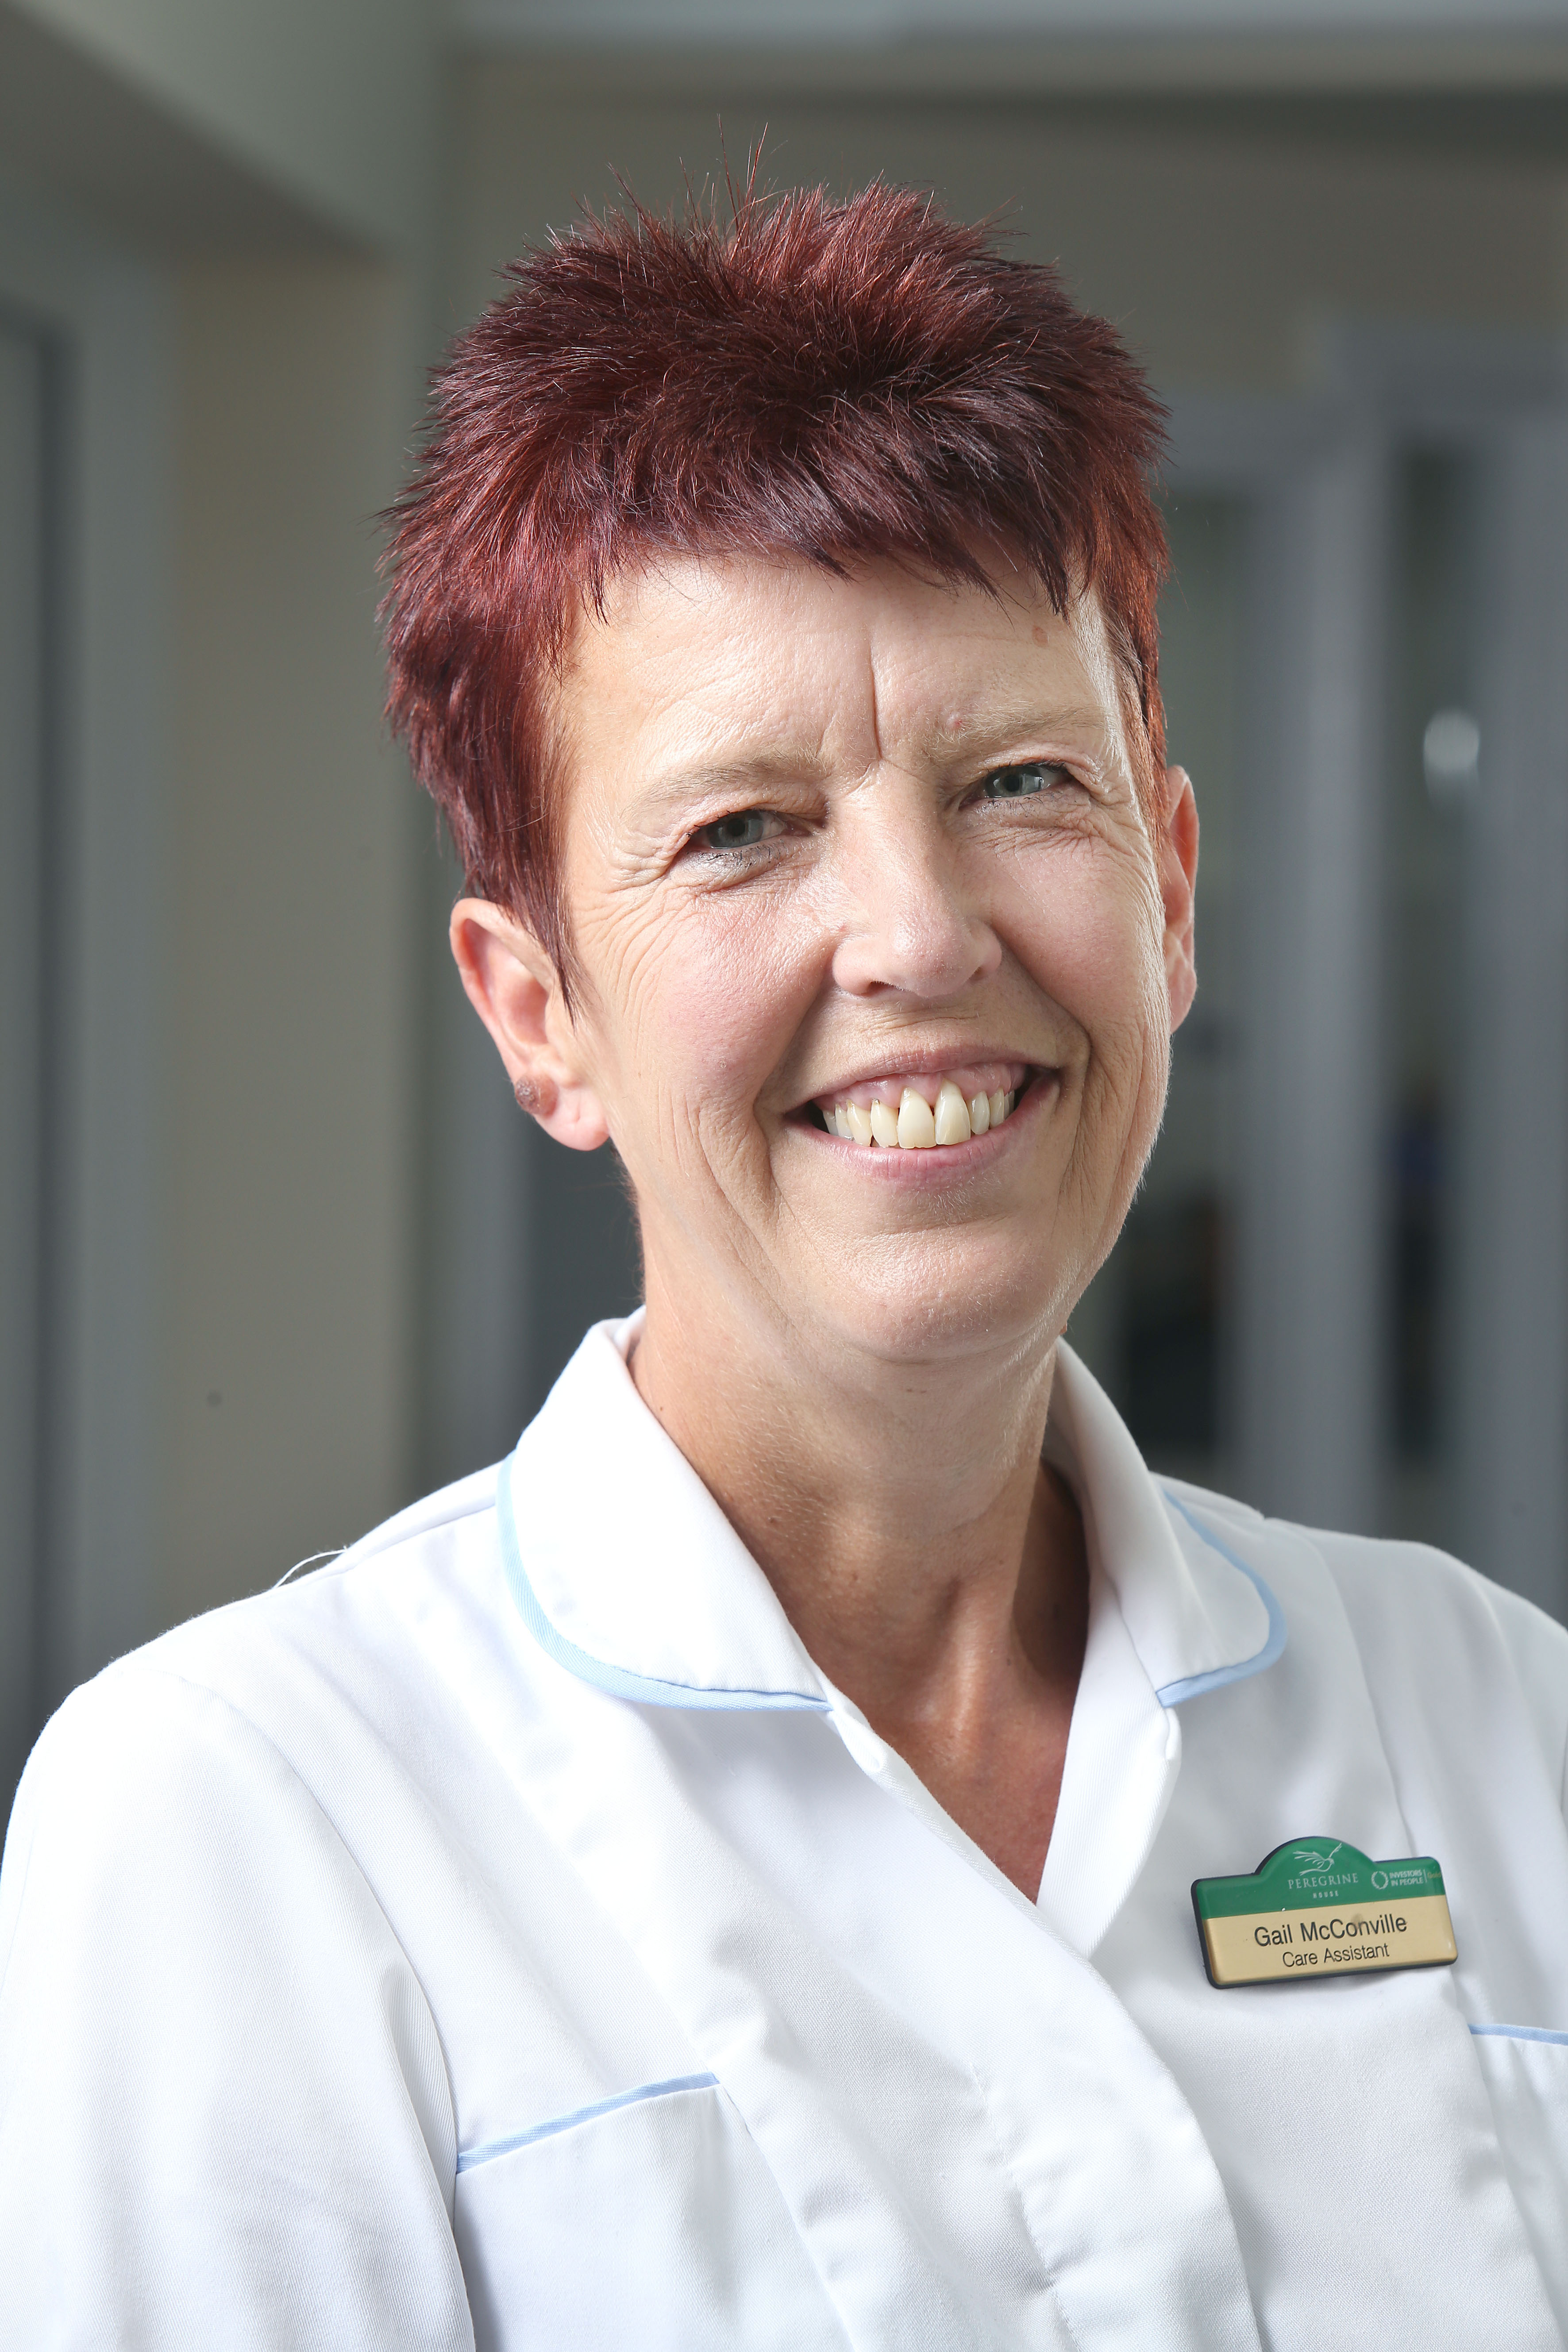 Gail McConville, Care Assistant